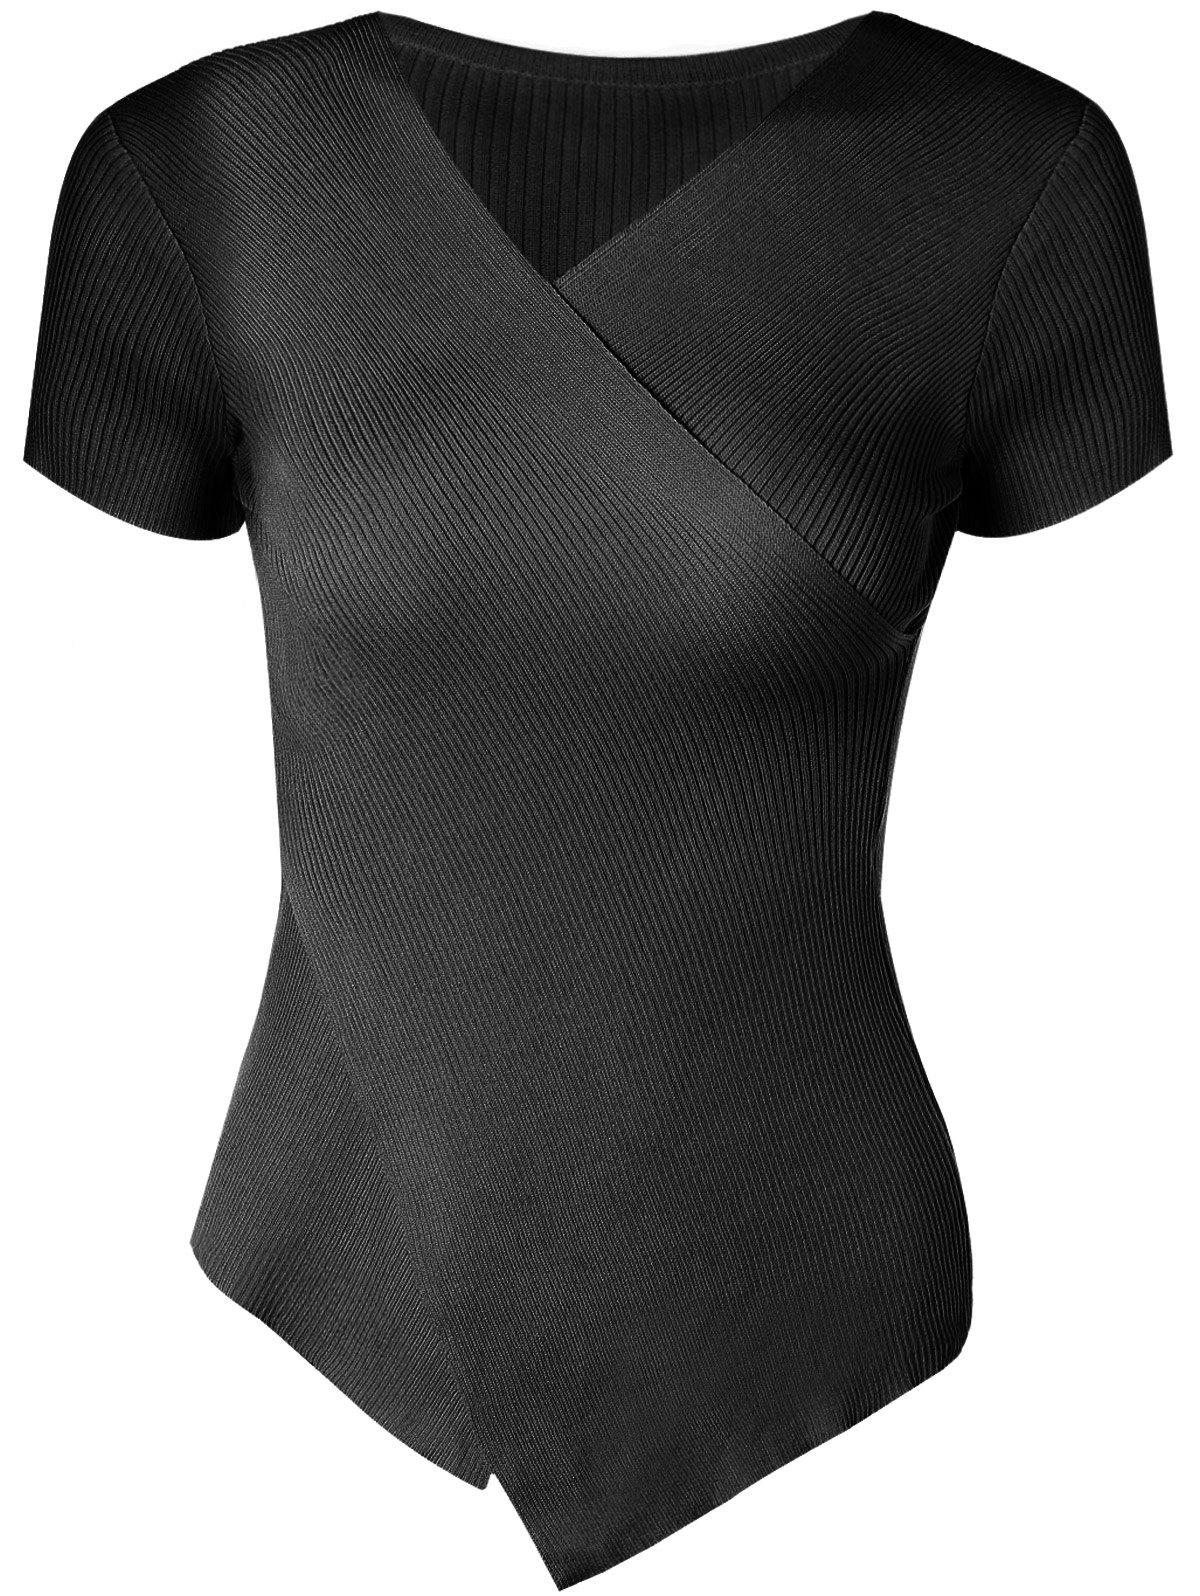 Stylish Women's V-Neck Solid Color Asymmetric Short Sleeves Knitwear - BLACK ONE SIZE(FIT SIZE XS TO M)